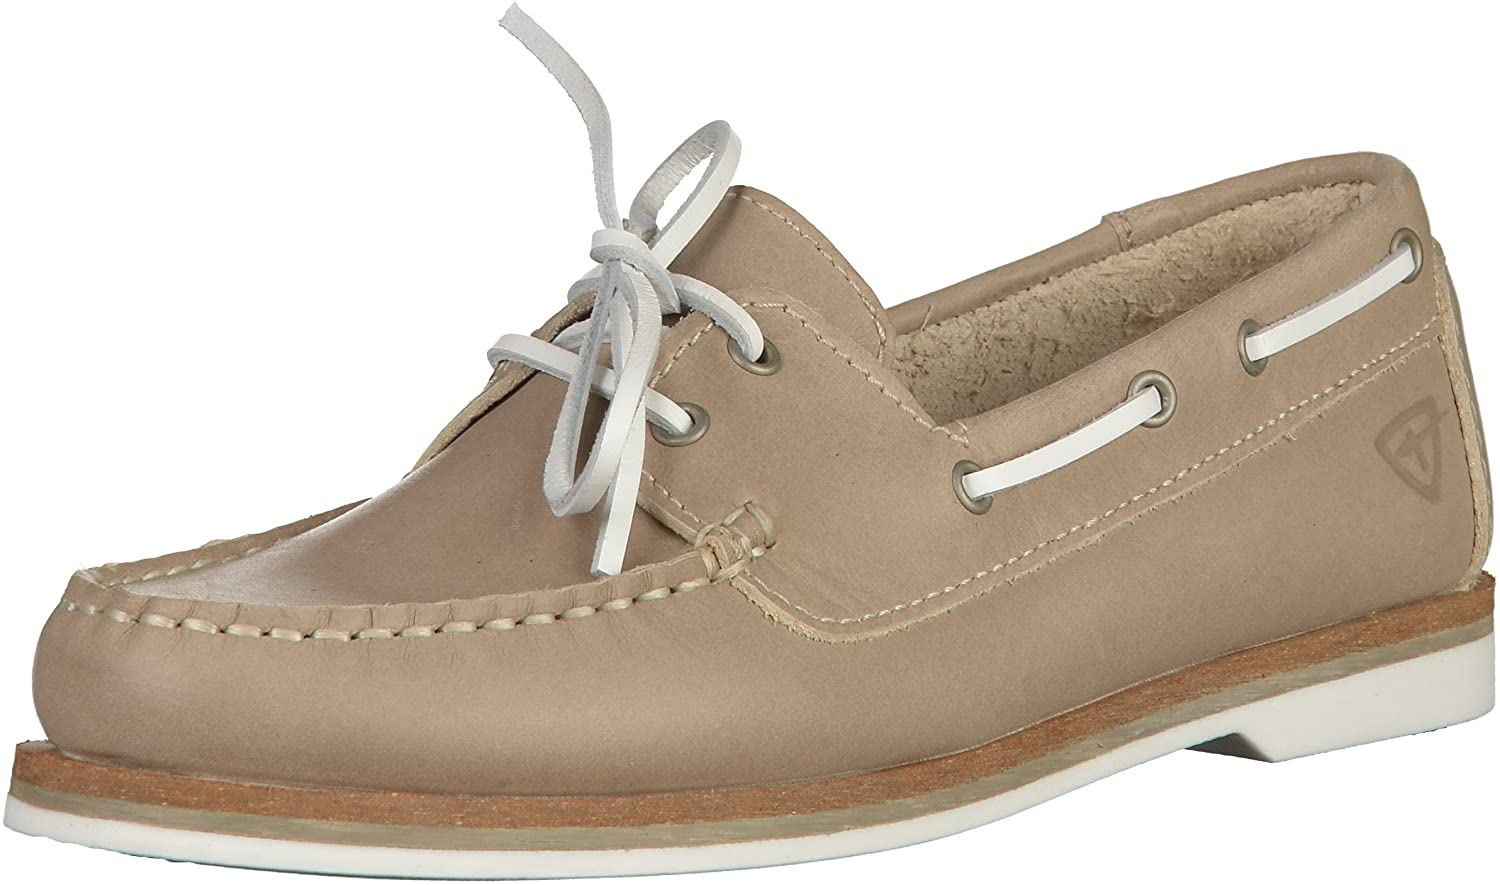 Womens 23616 Mocassins, Blue, 3 UK Tamaris